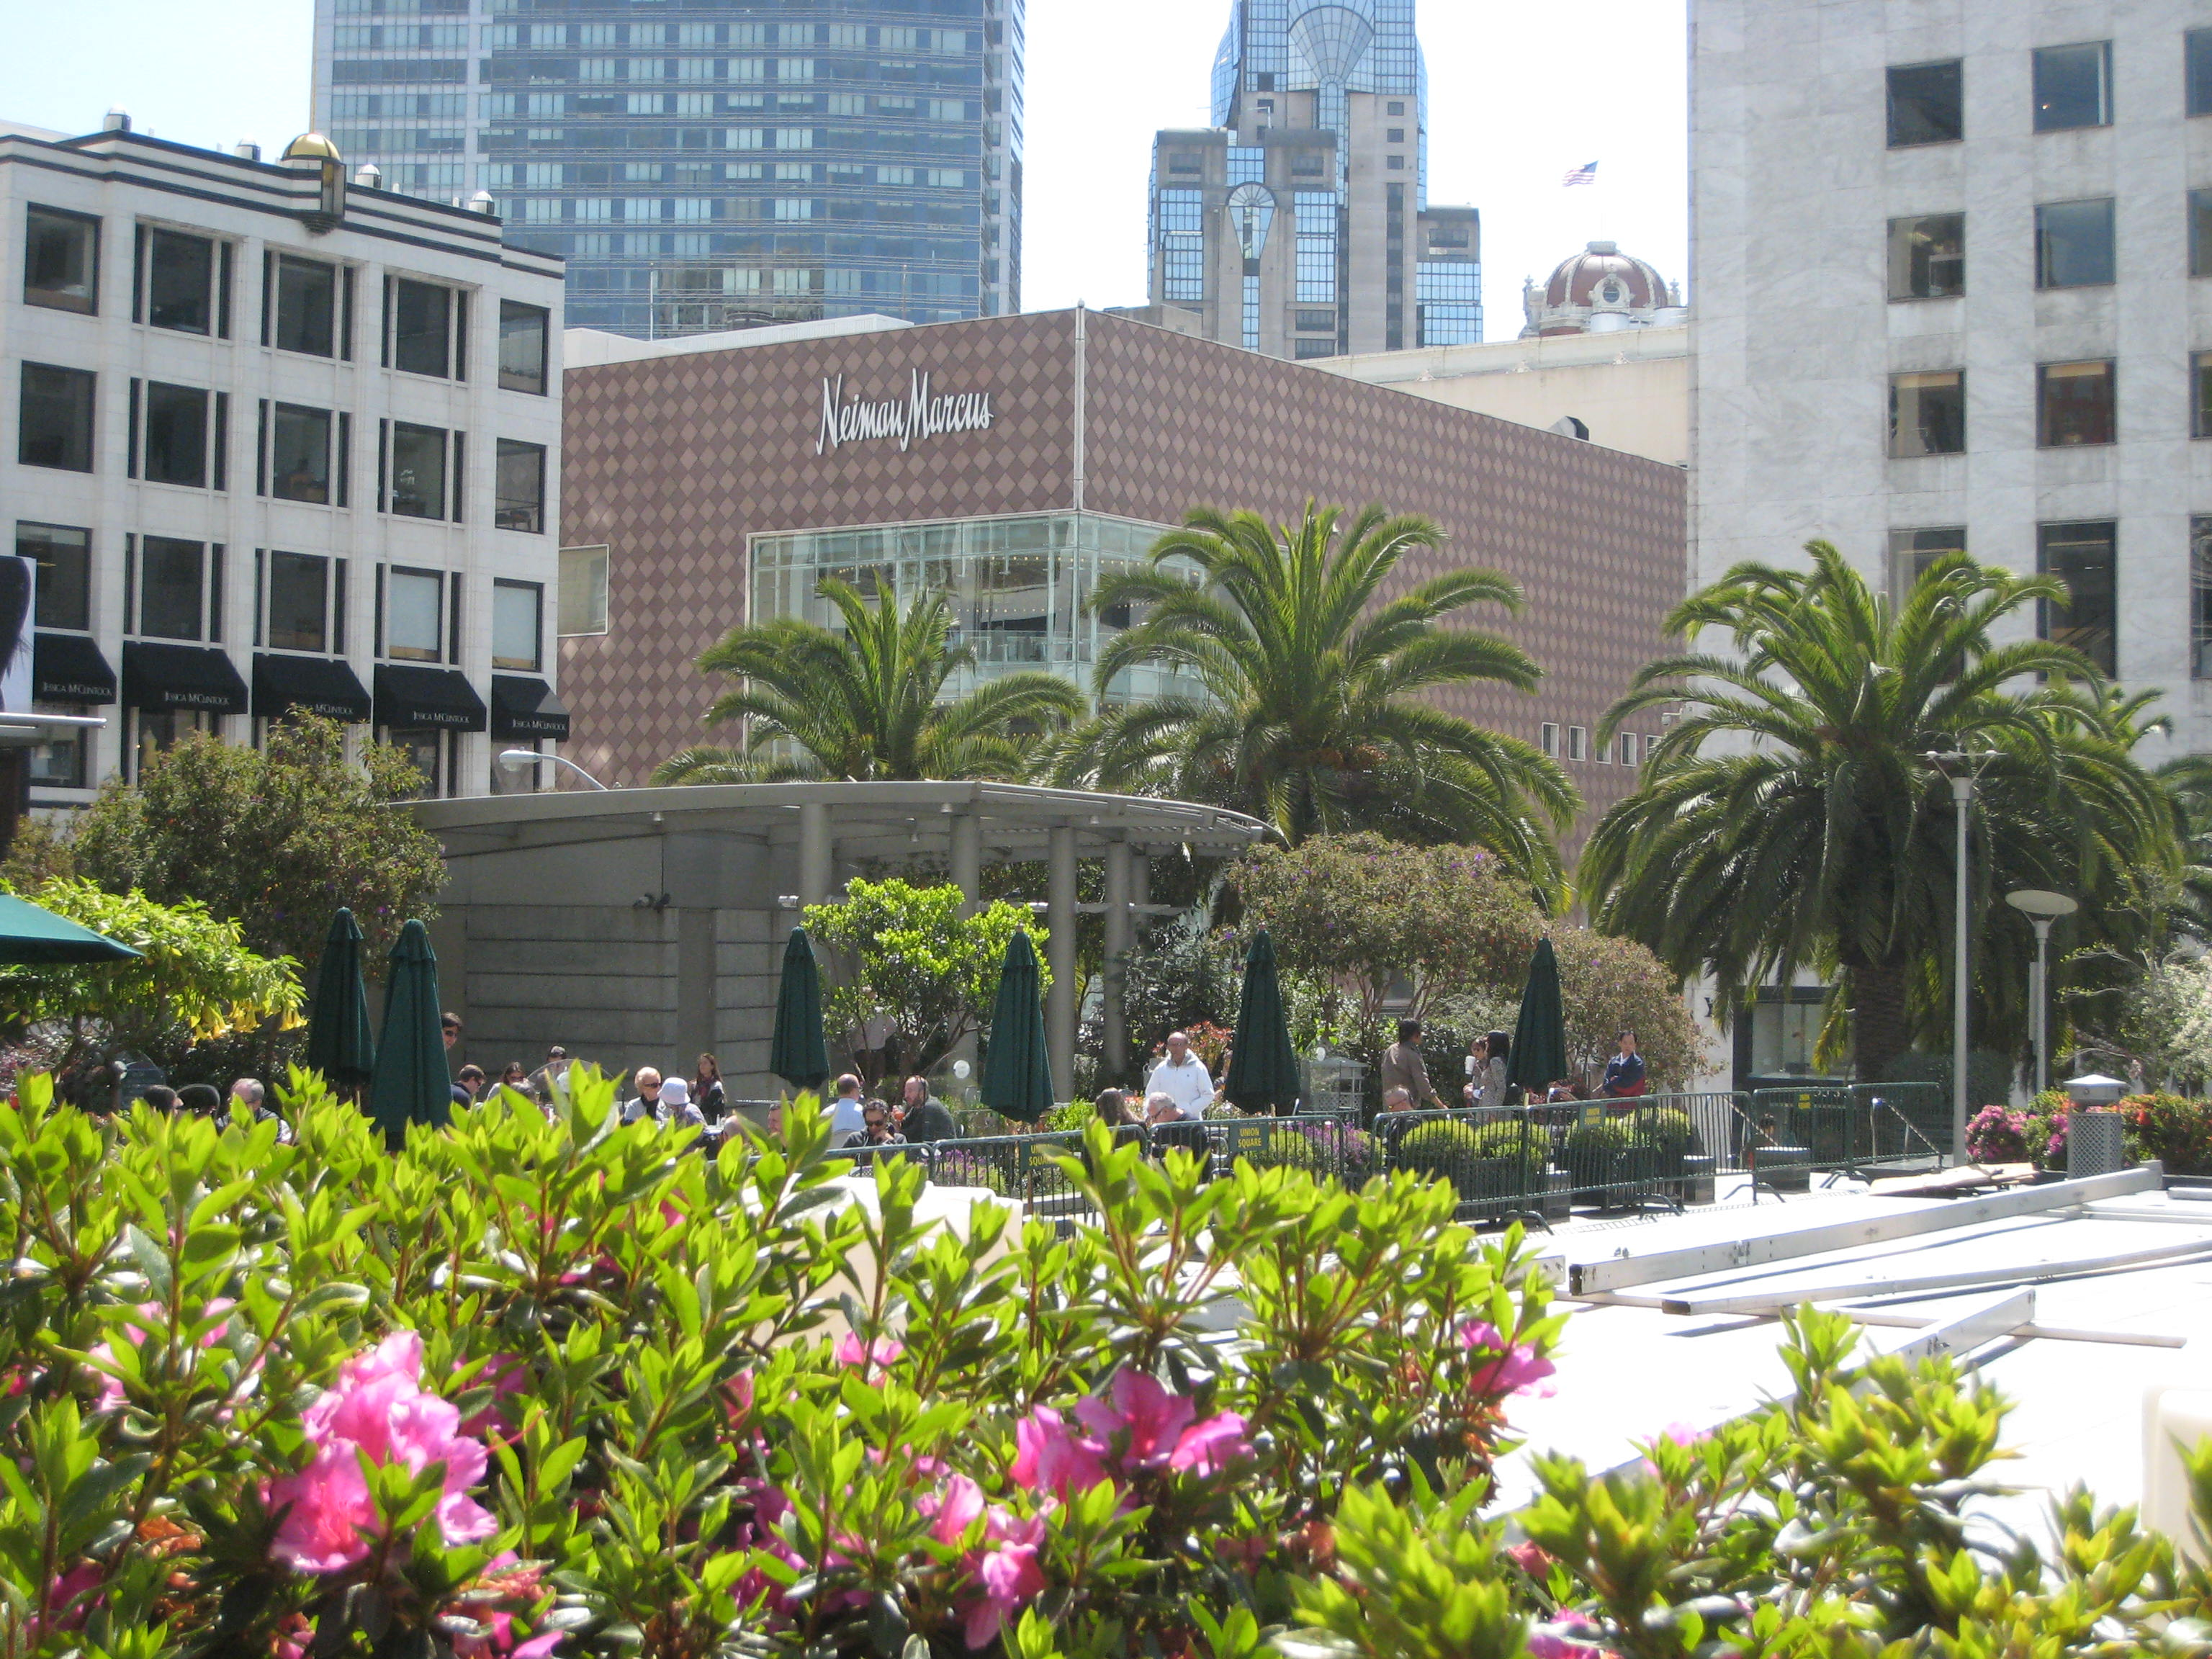 Ferragamo Neiman Marcus Art Hearts Union Square San Francisco